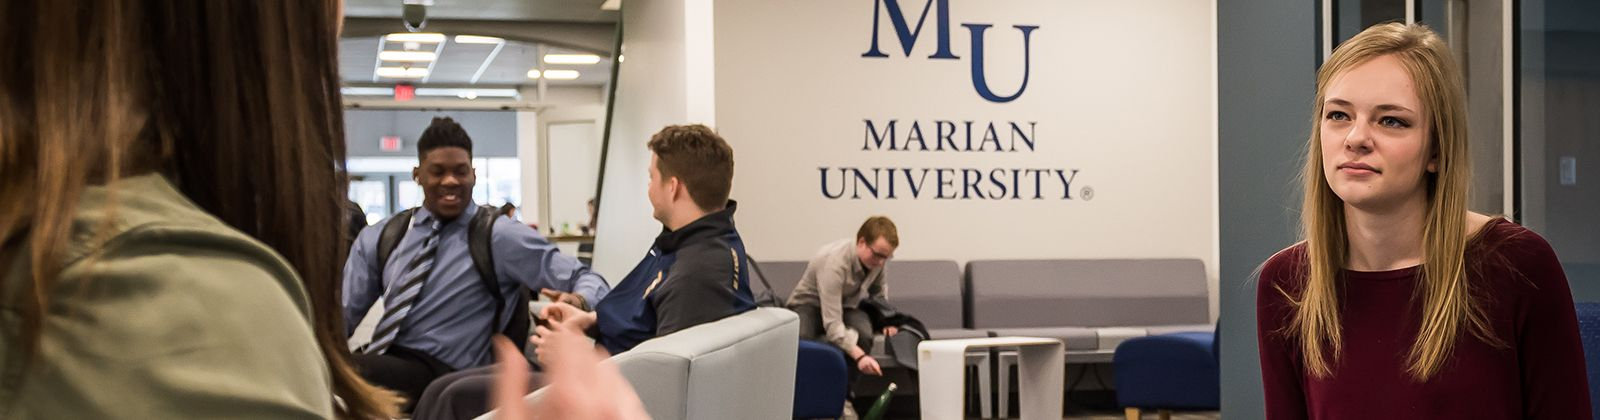 Marian University has a range of academic programs